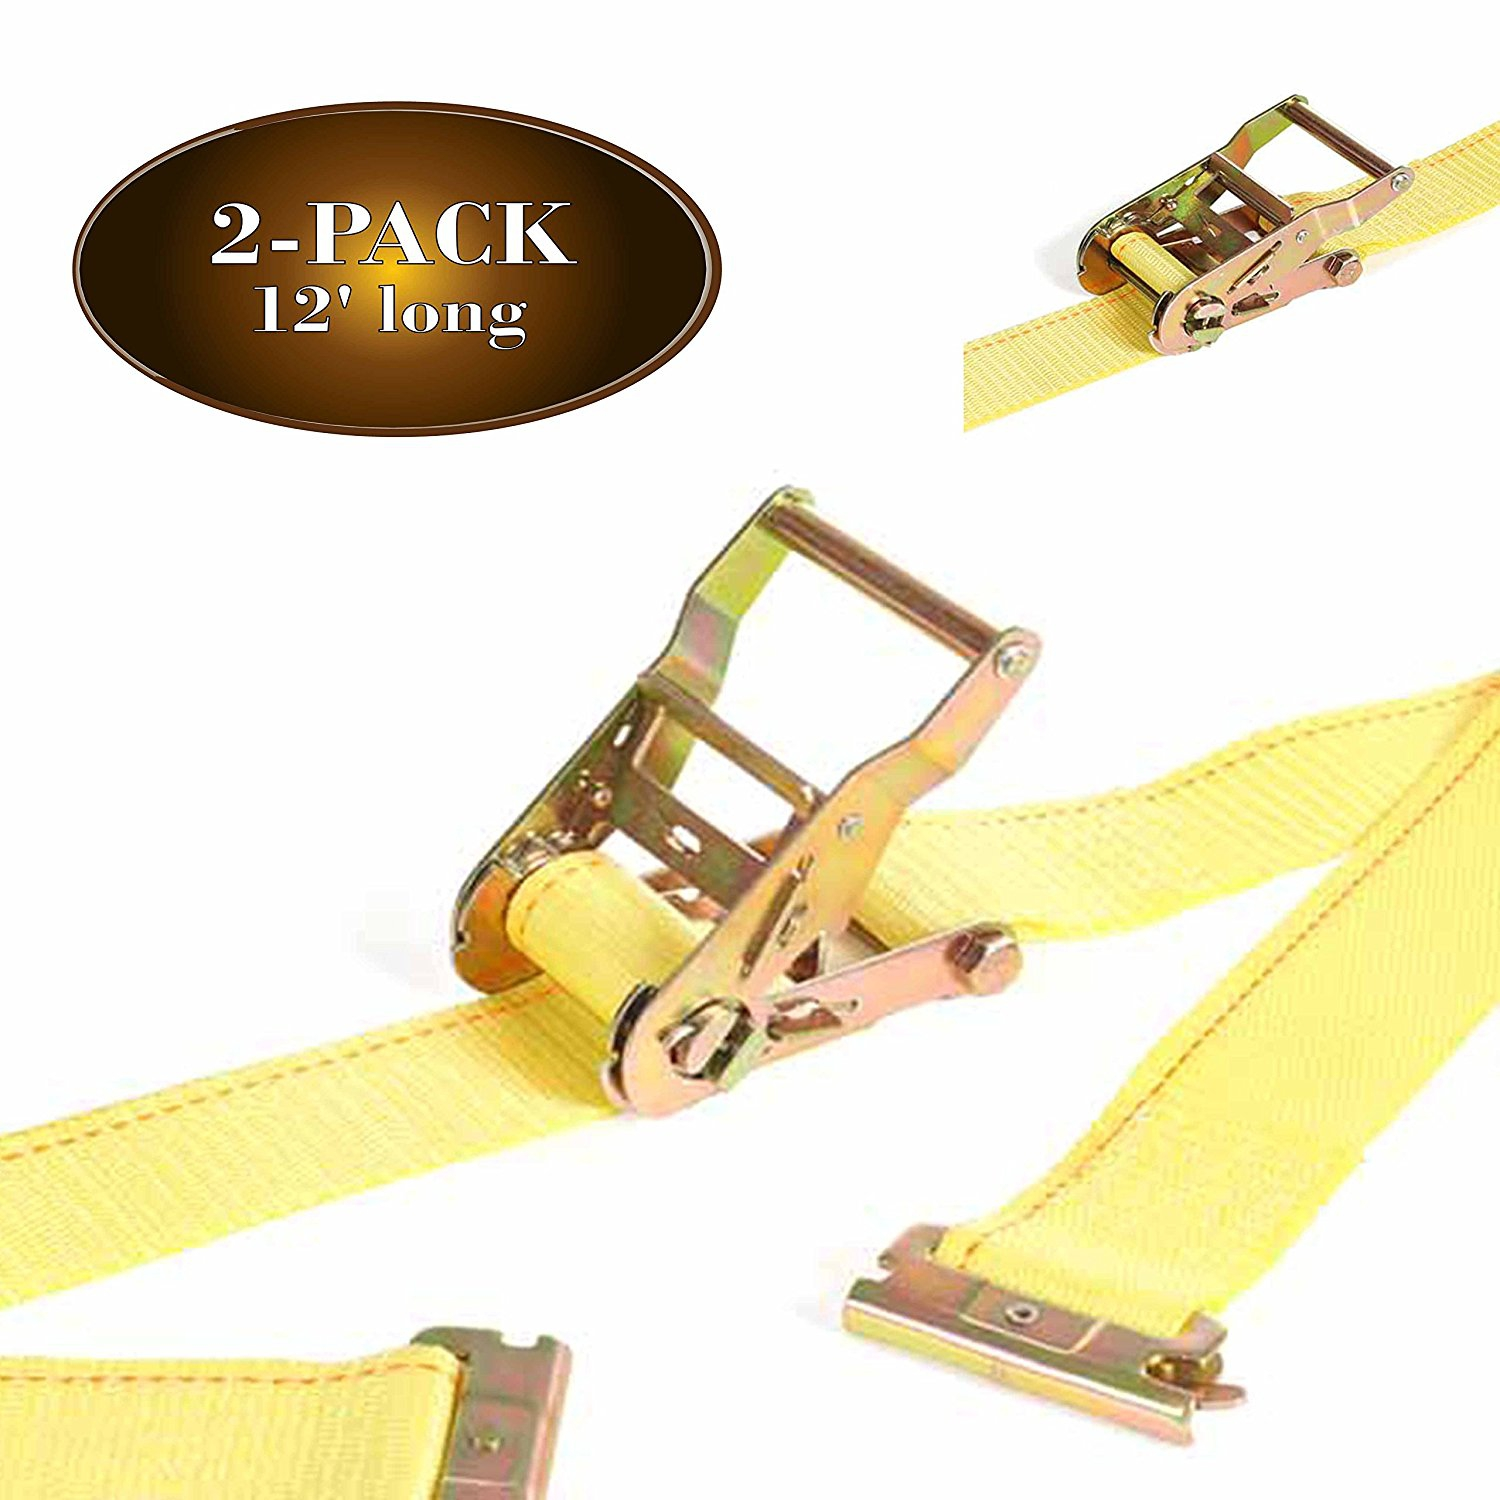 2Pk E Track Ratcheting Straps Cargo TieDowns, 2 x 12 Heavy Duty Yellow Polyester Tie-Down Straps,... by Dc Cargo Mall